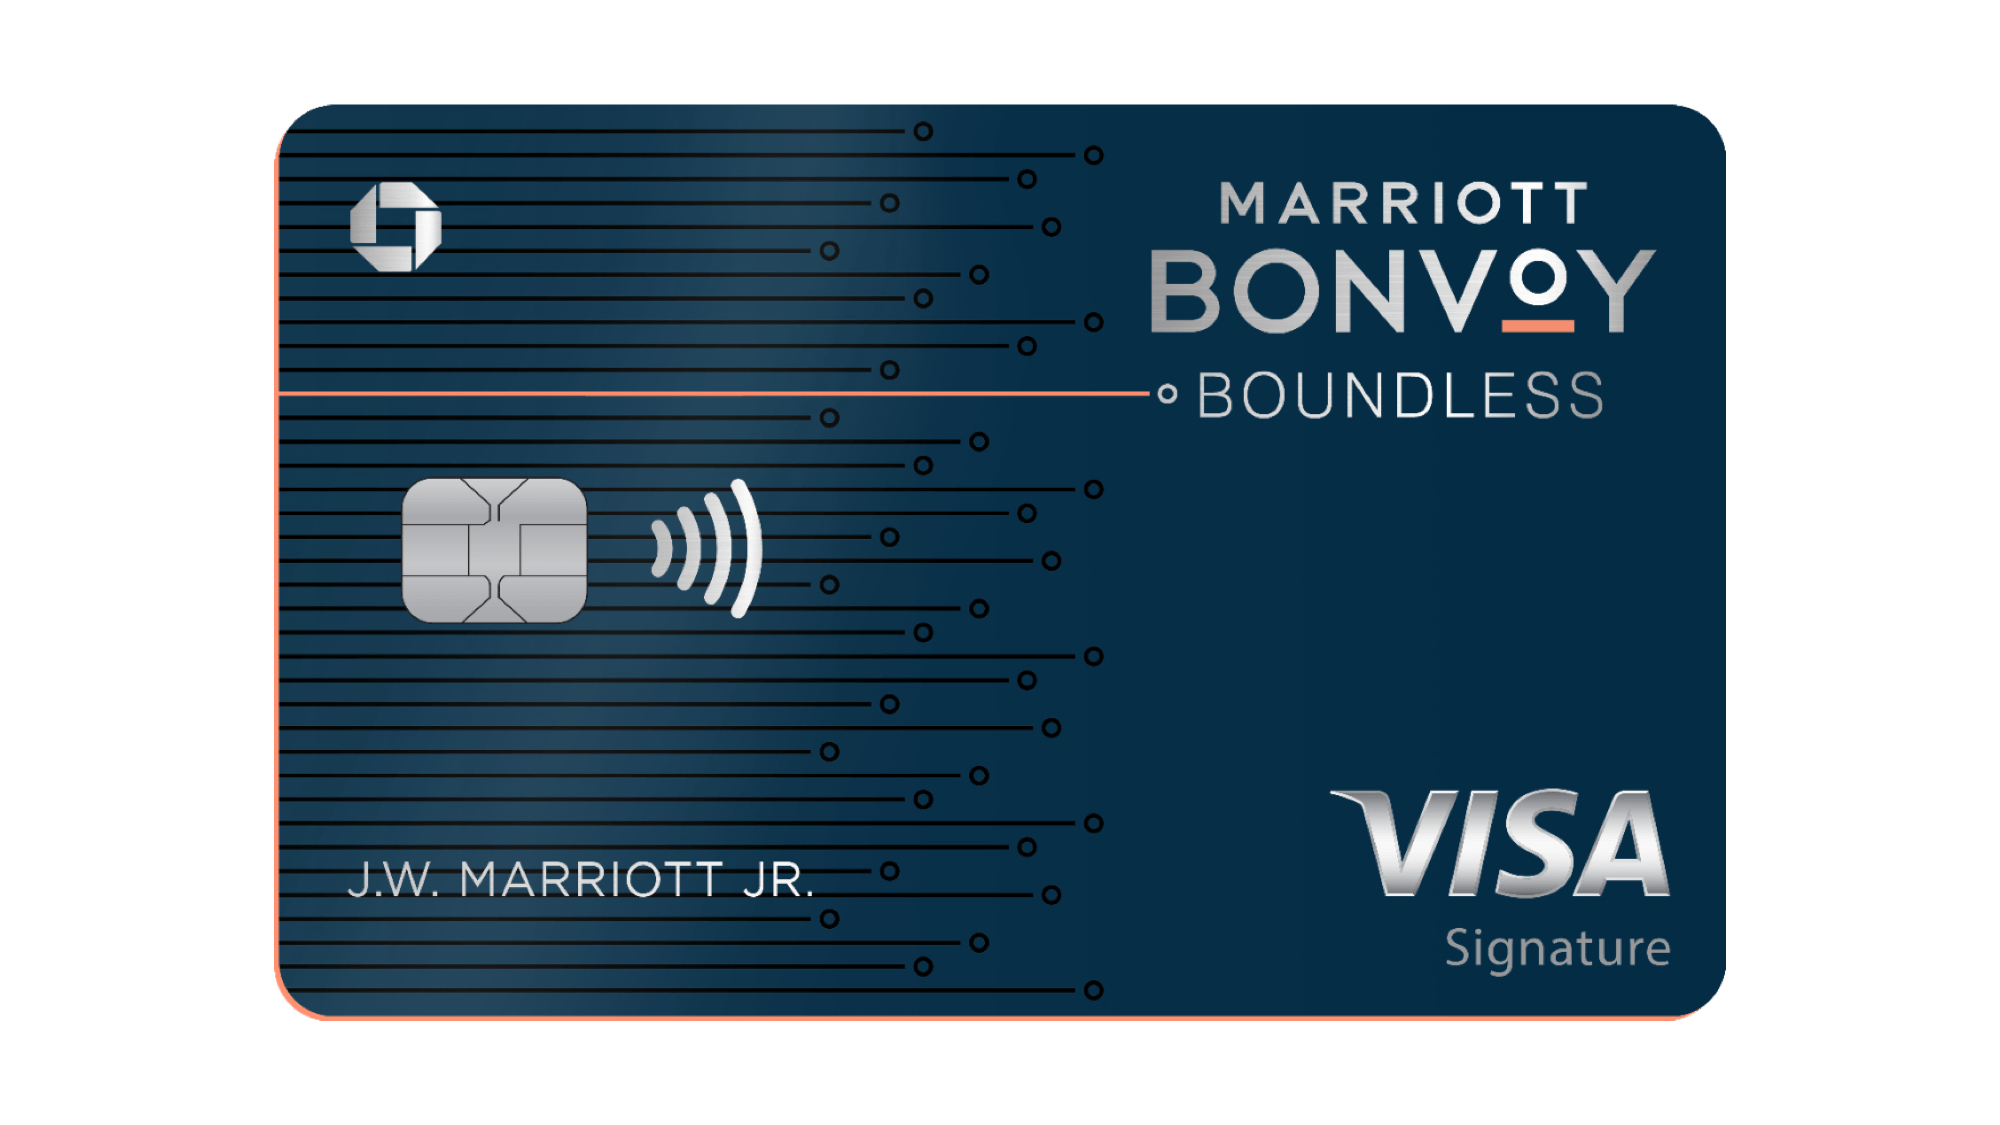 United Credit Card Customer Service Earn Loyalty Points With Your Credit Card Marriott Bonvoy